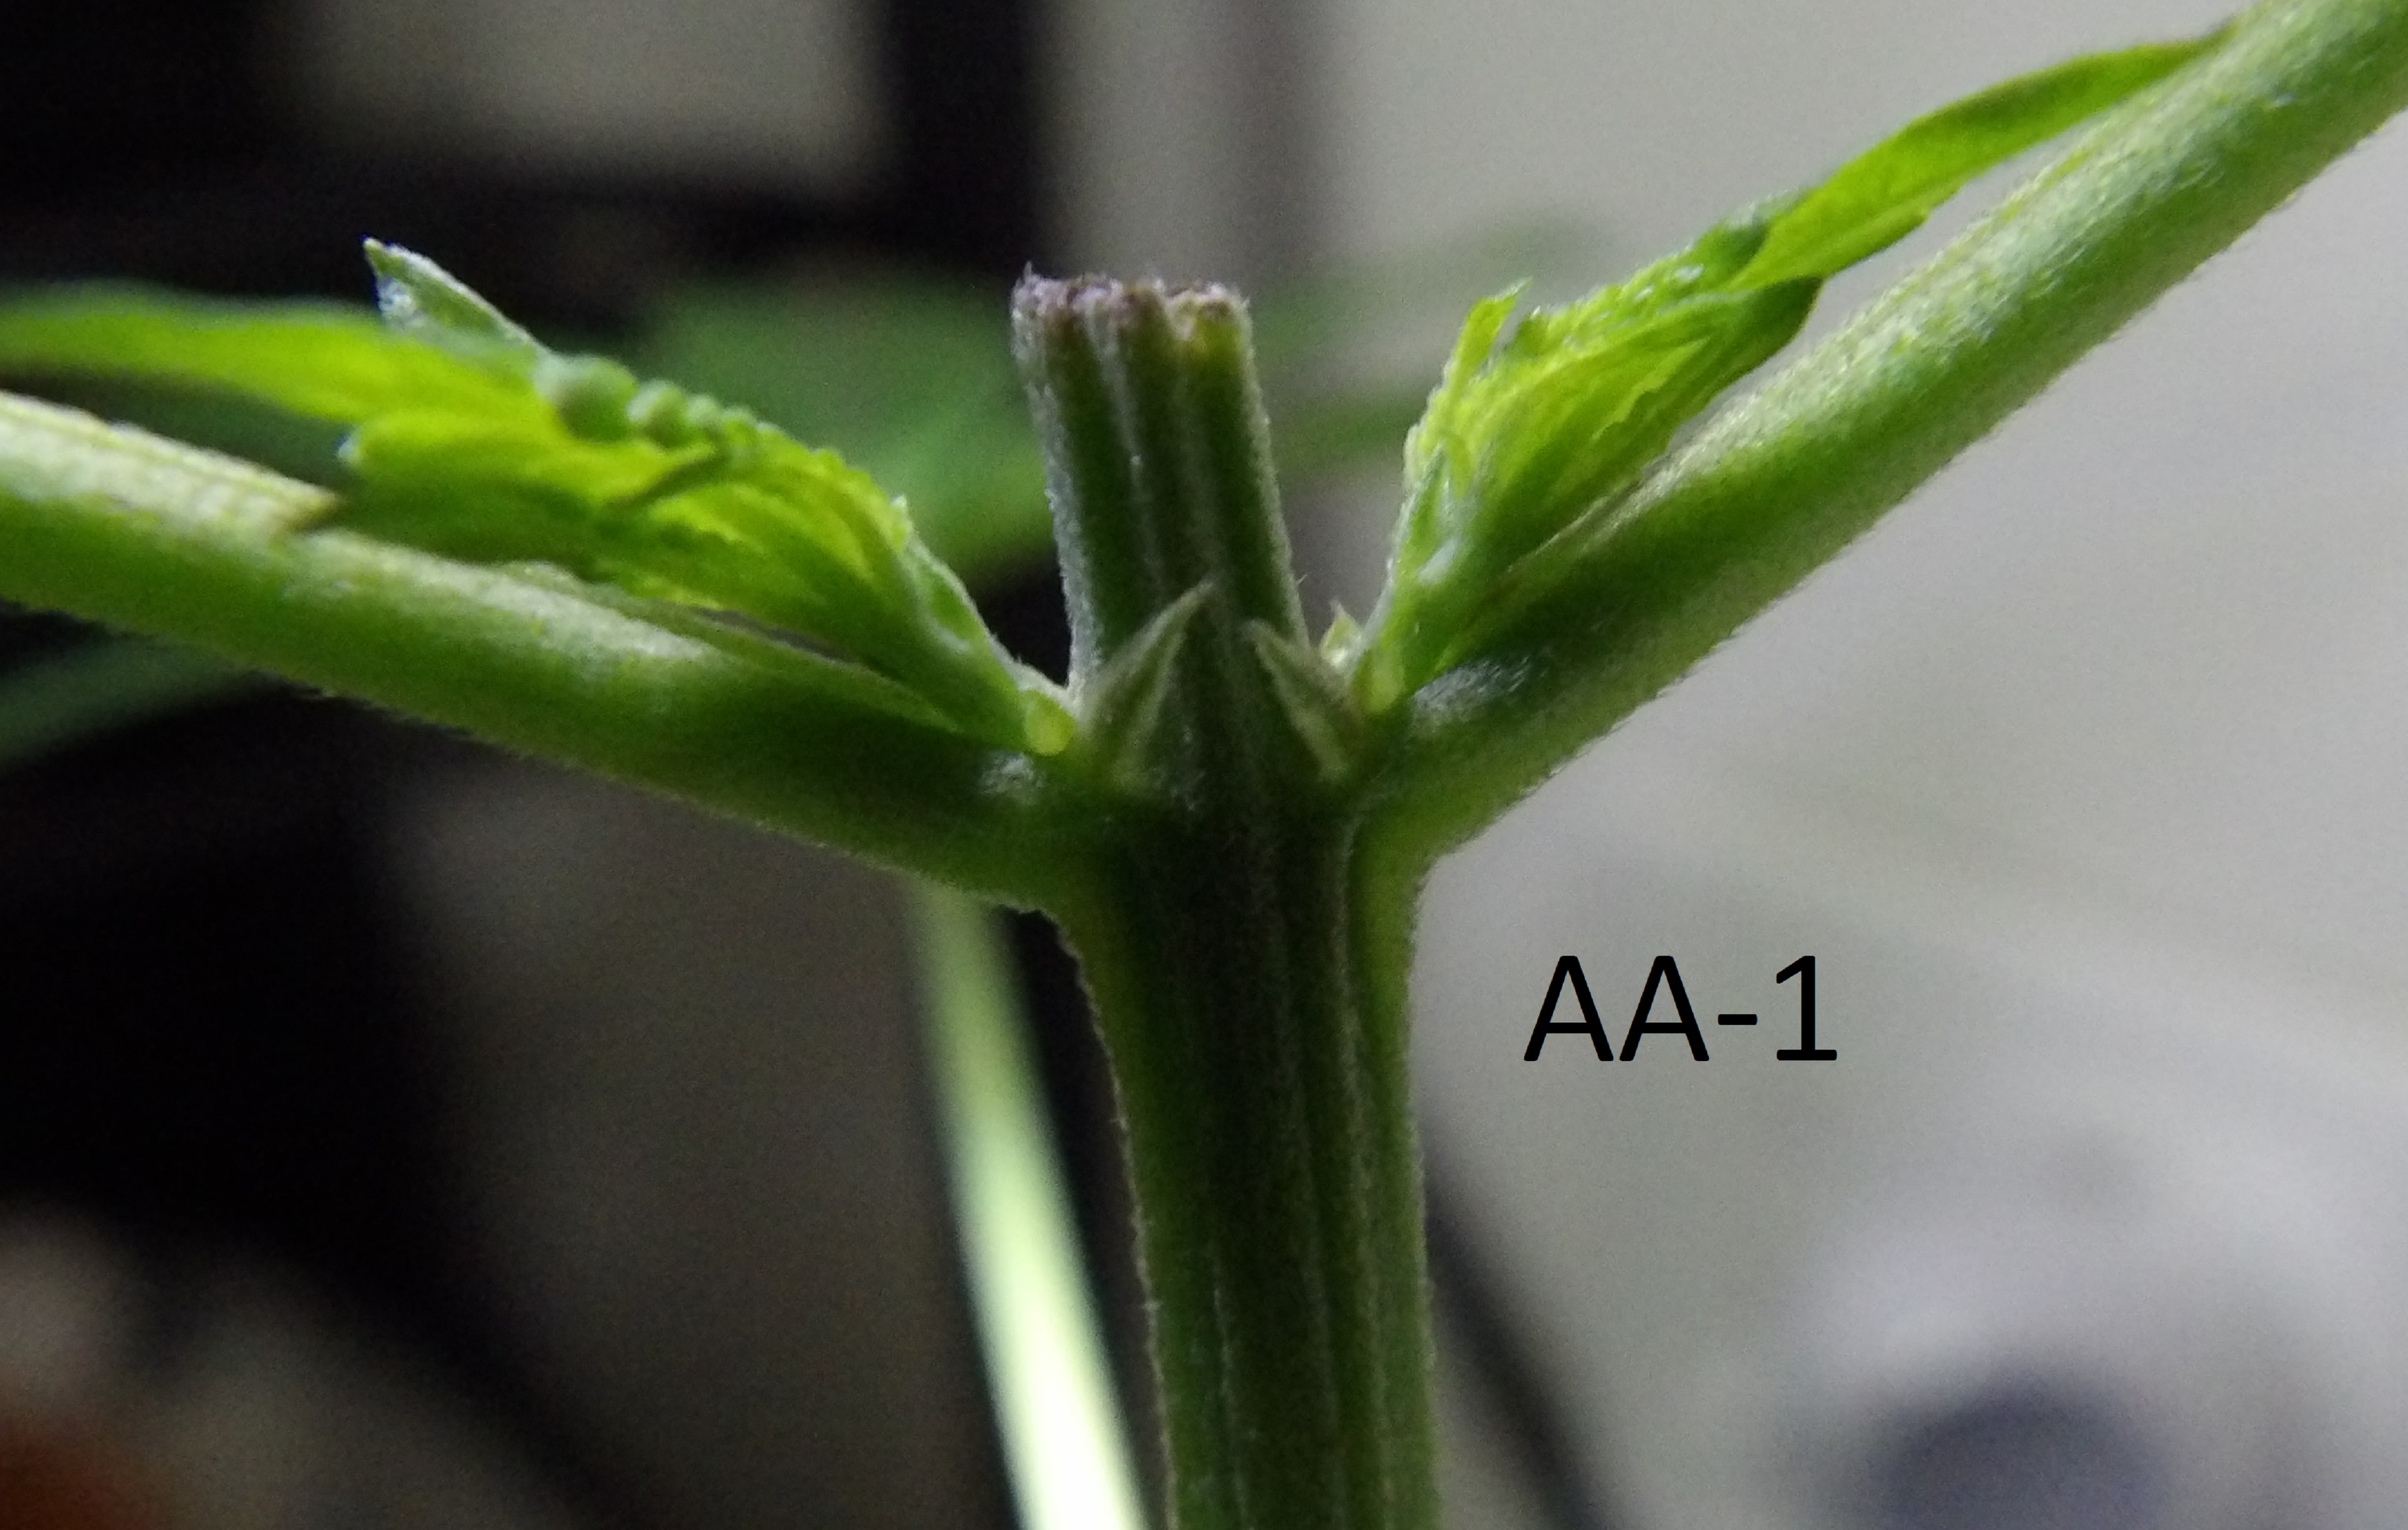 Clone AA-1 after one week of spraying with homemade Colloidal Silver, looks like a male.